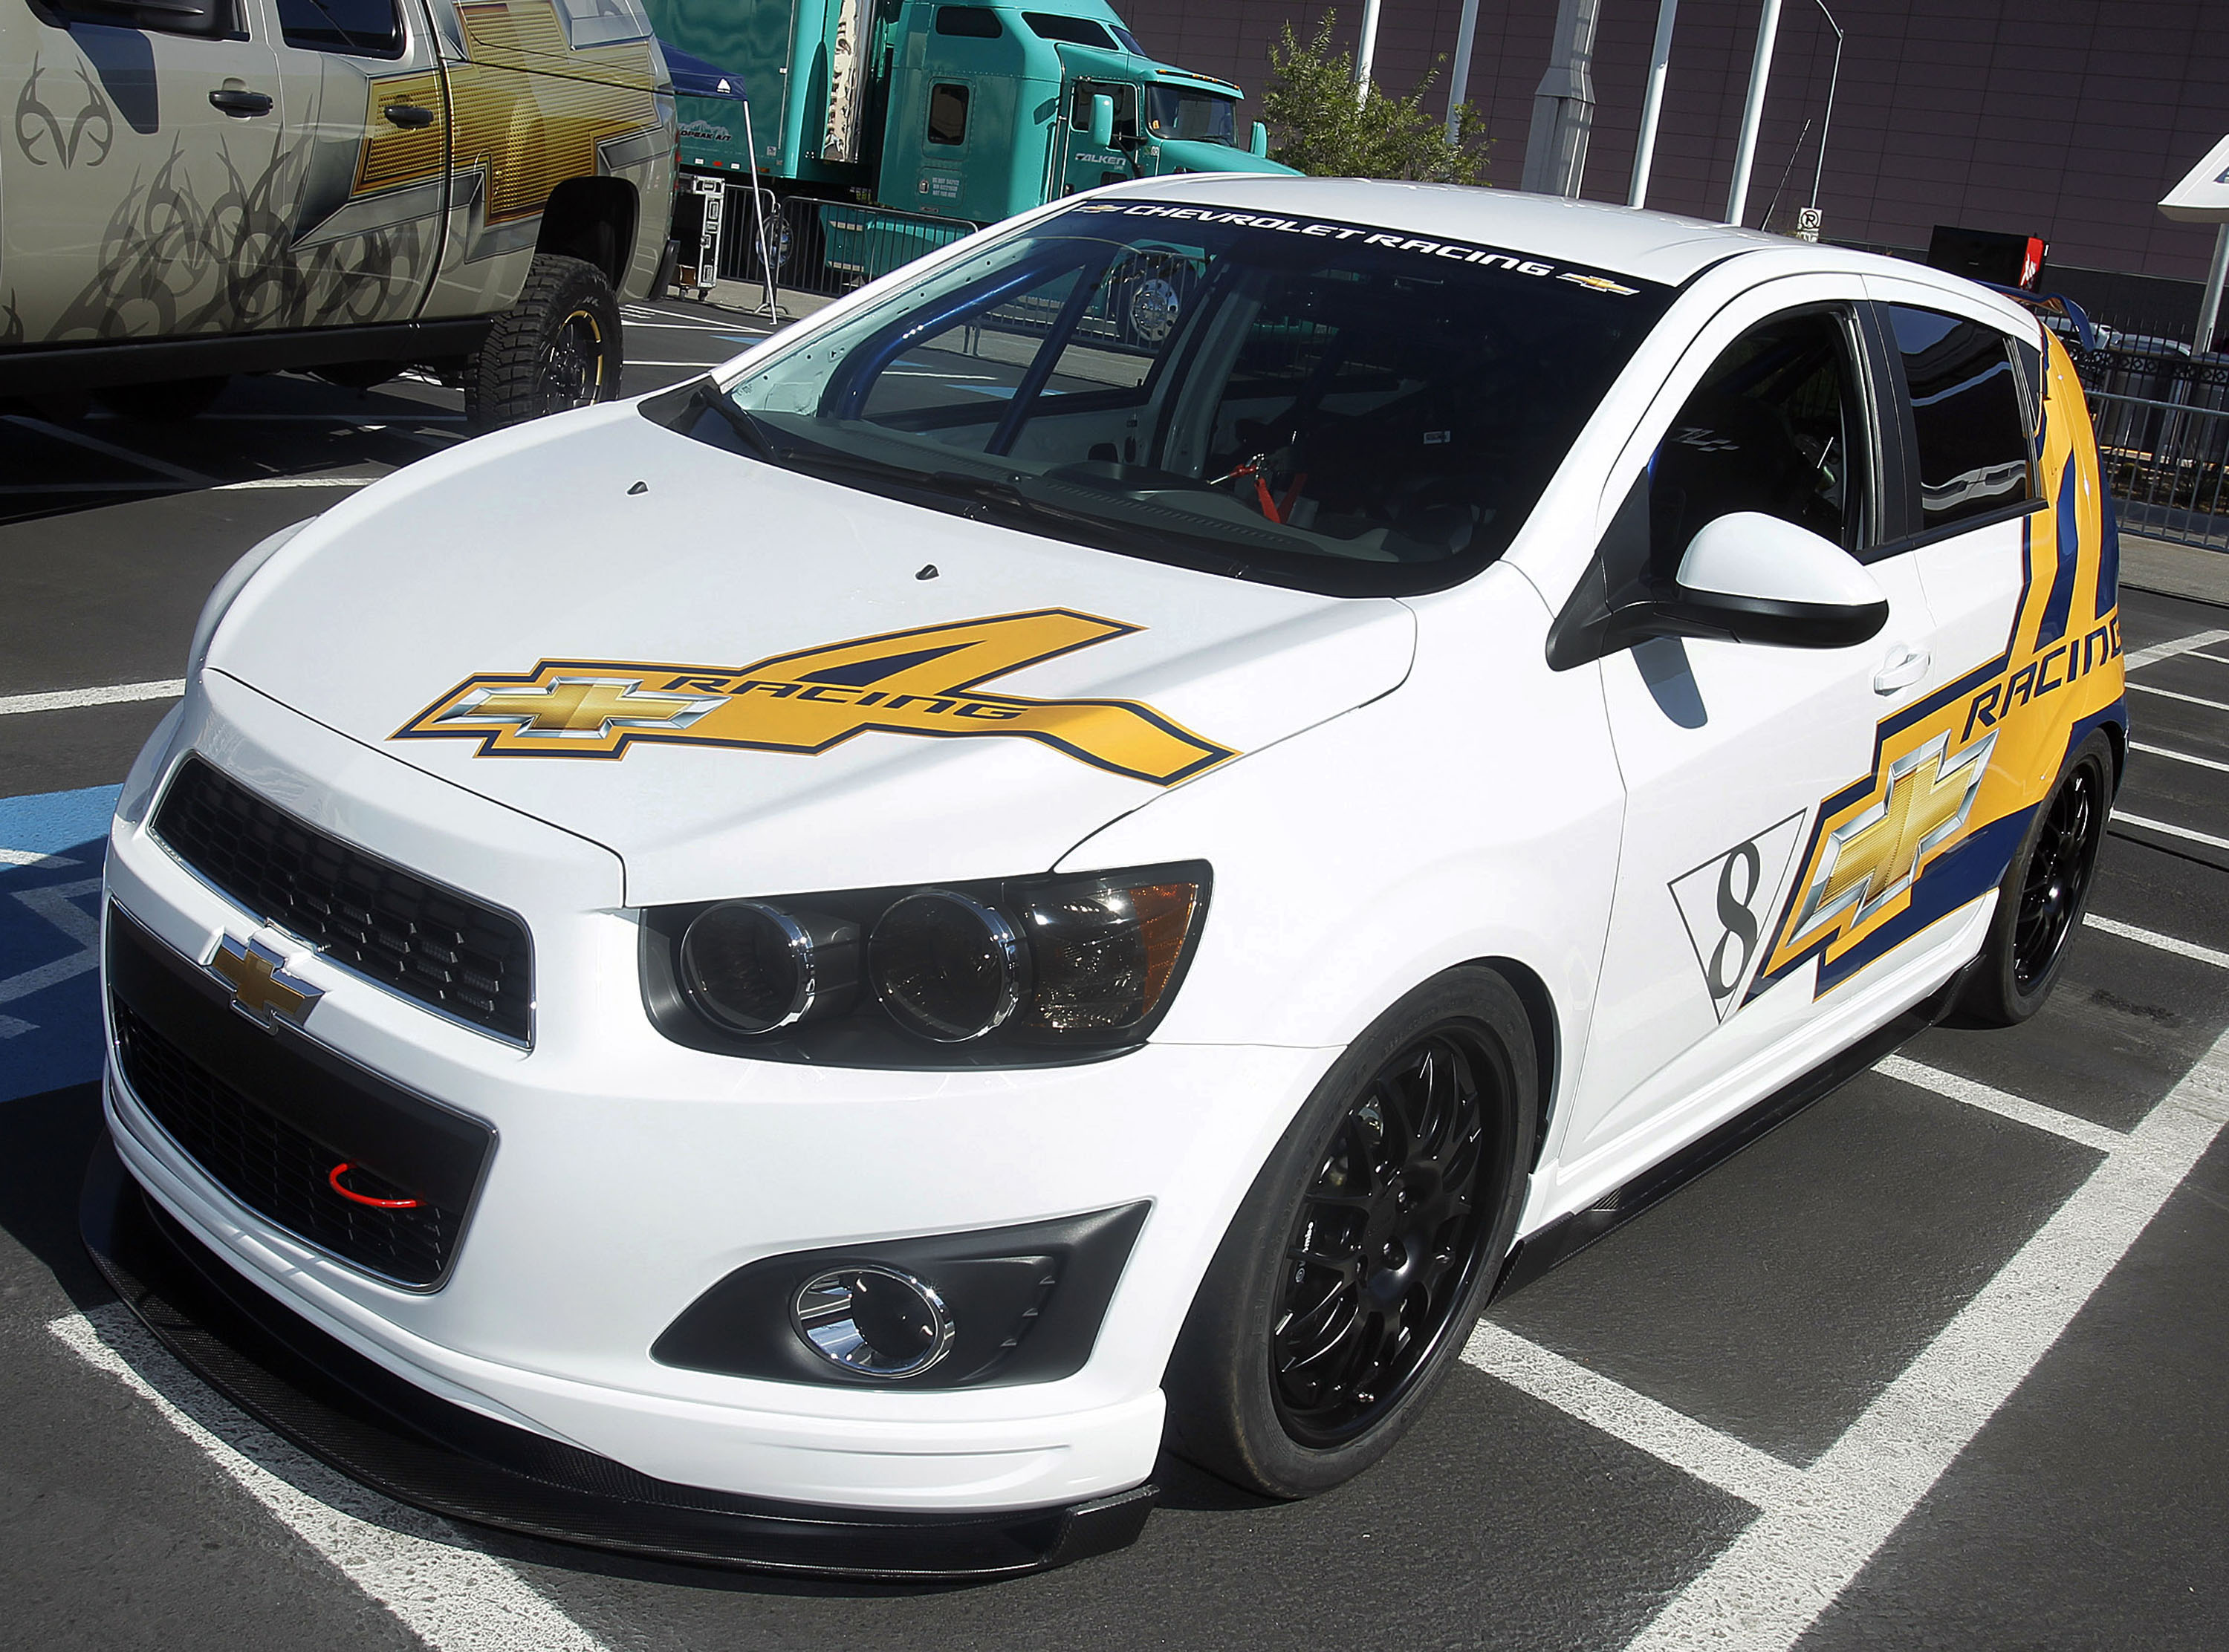 Chevrolet Sonic Owners Manual: Trailer Towing